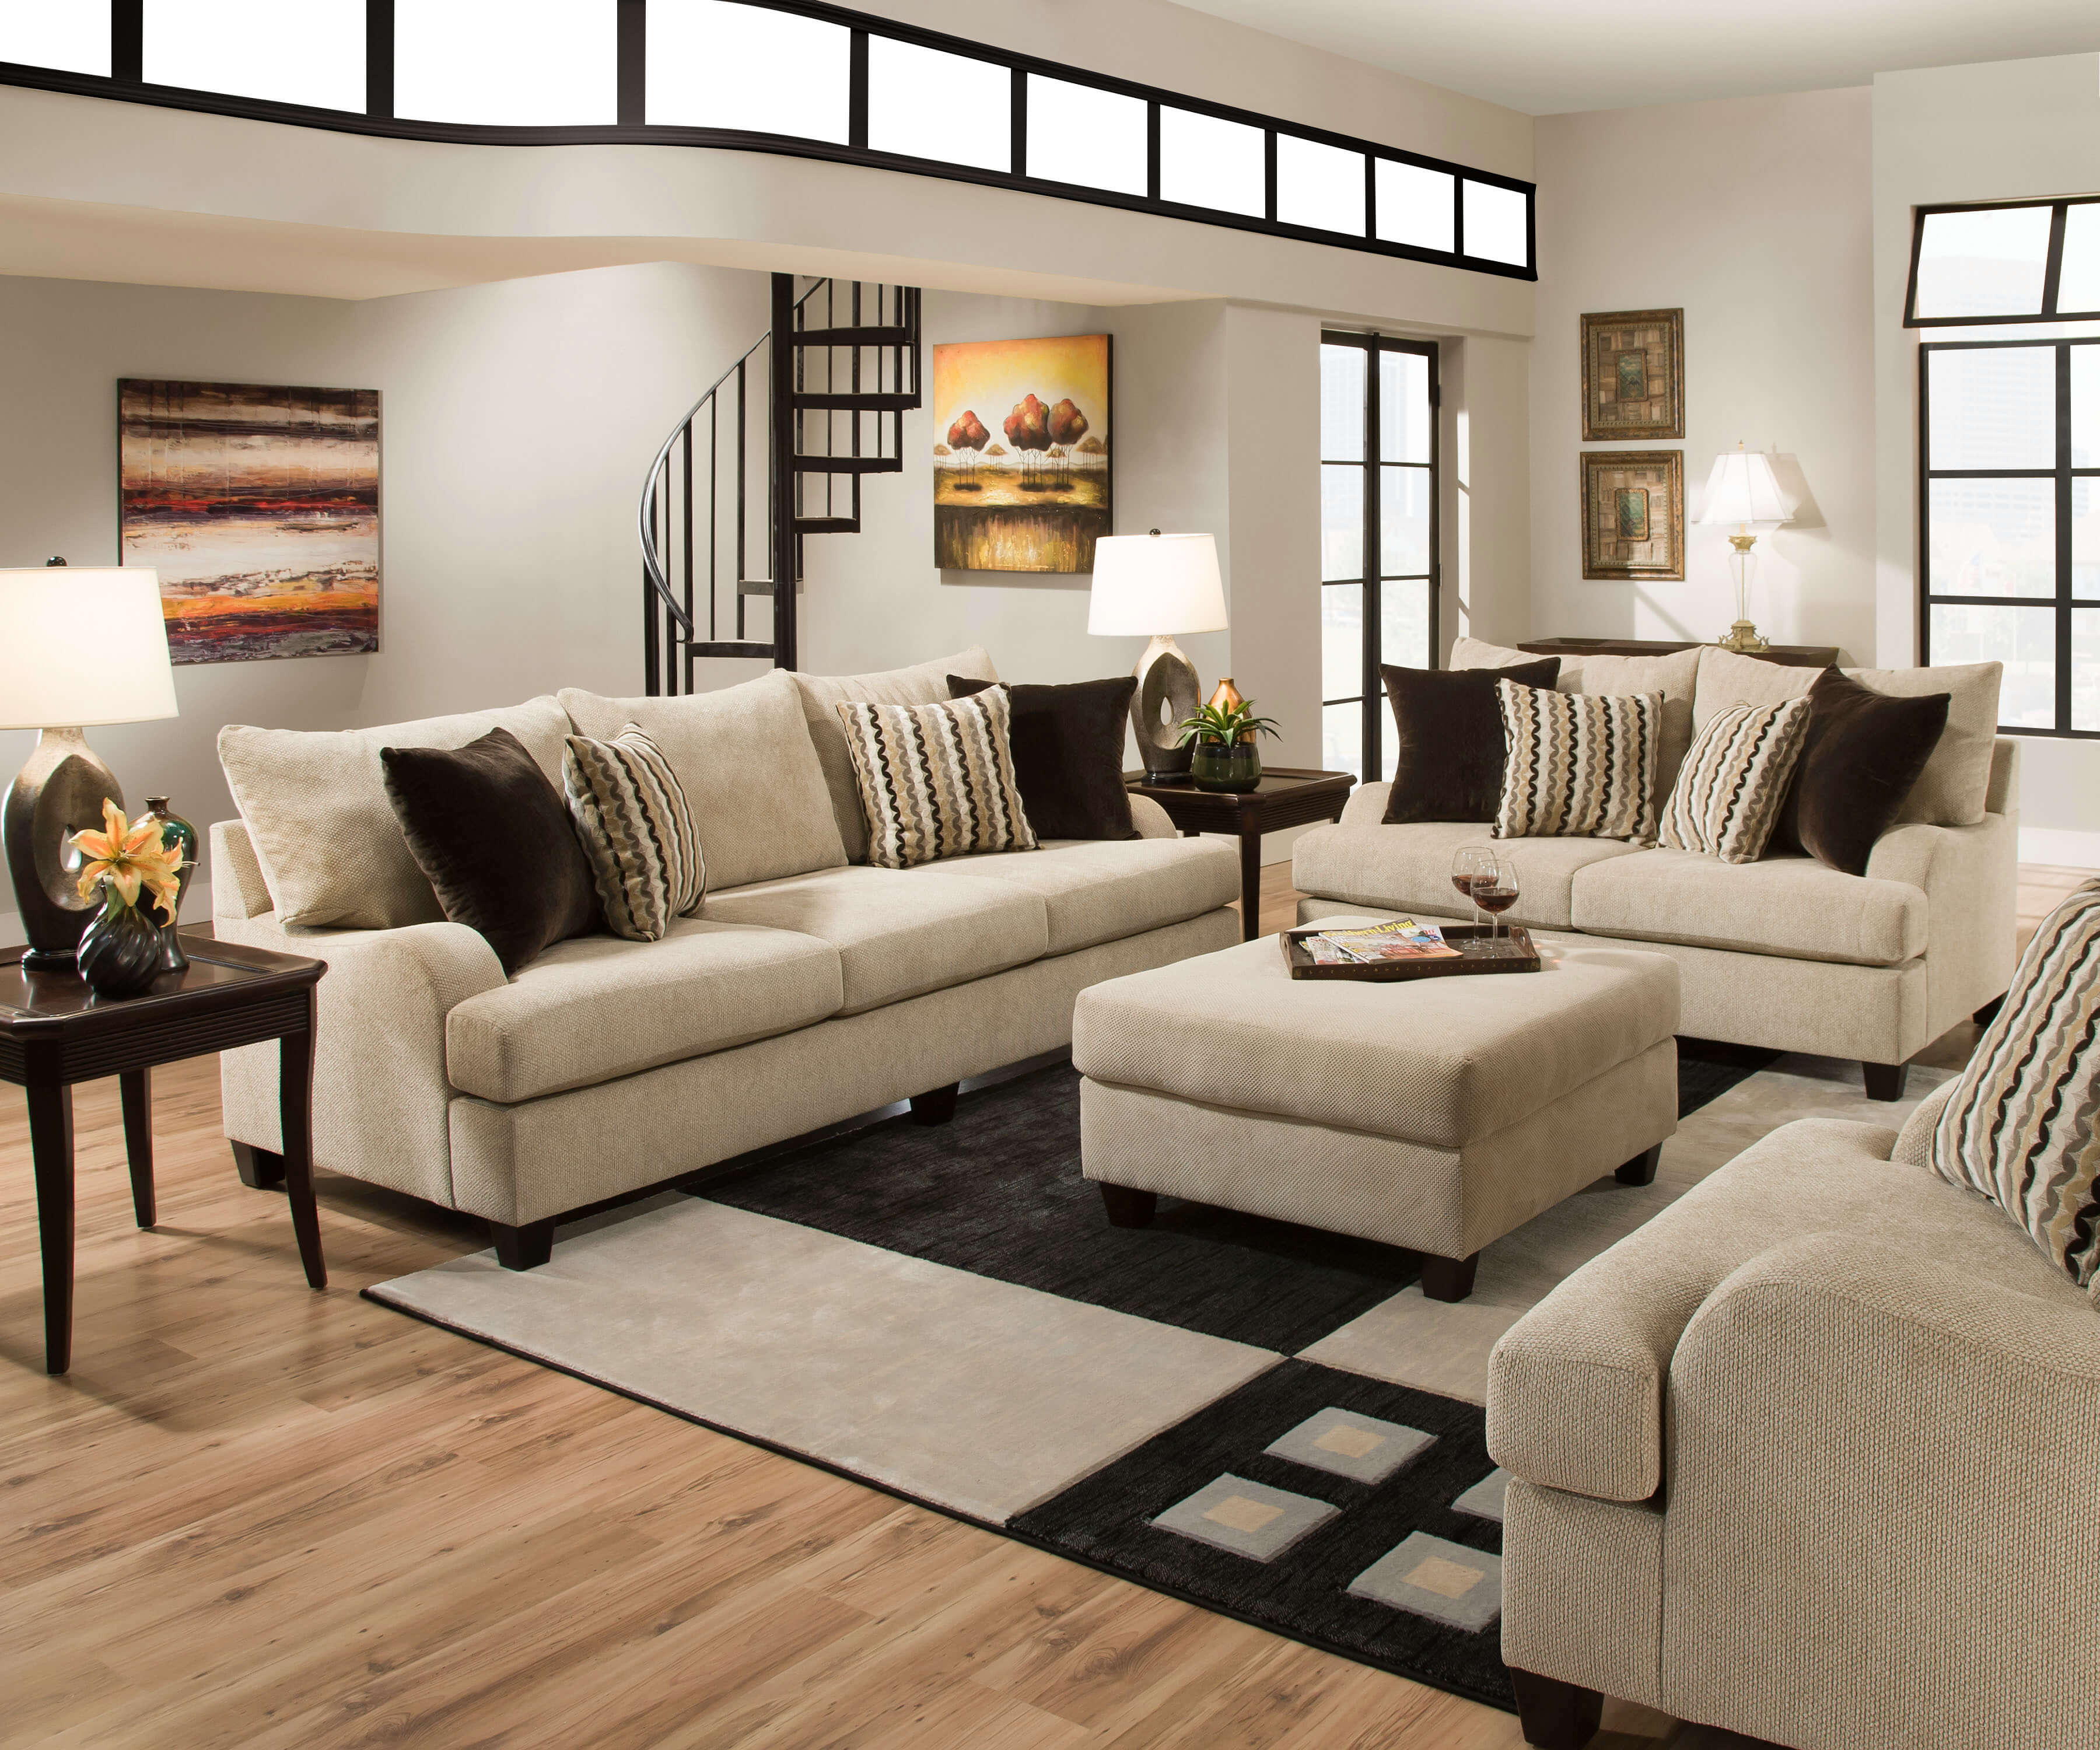 Simmons Trinidad Taupe Living Room Set Fabric Living Room Sets with 14 Clever Concepts of How to Build Simmons Living Room Set